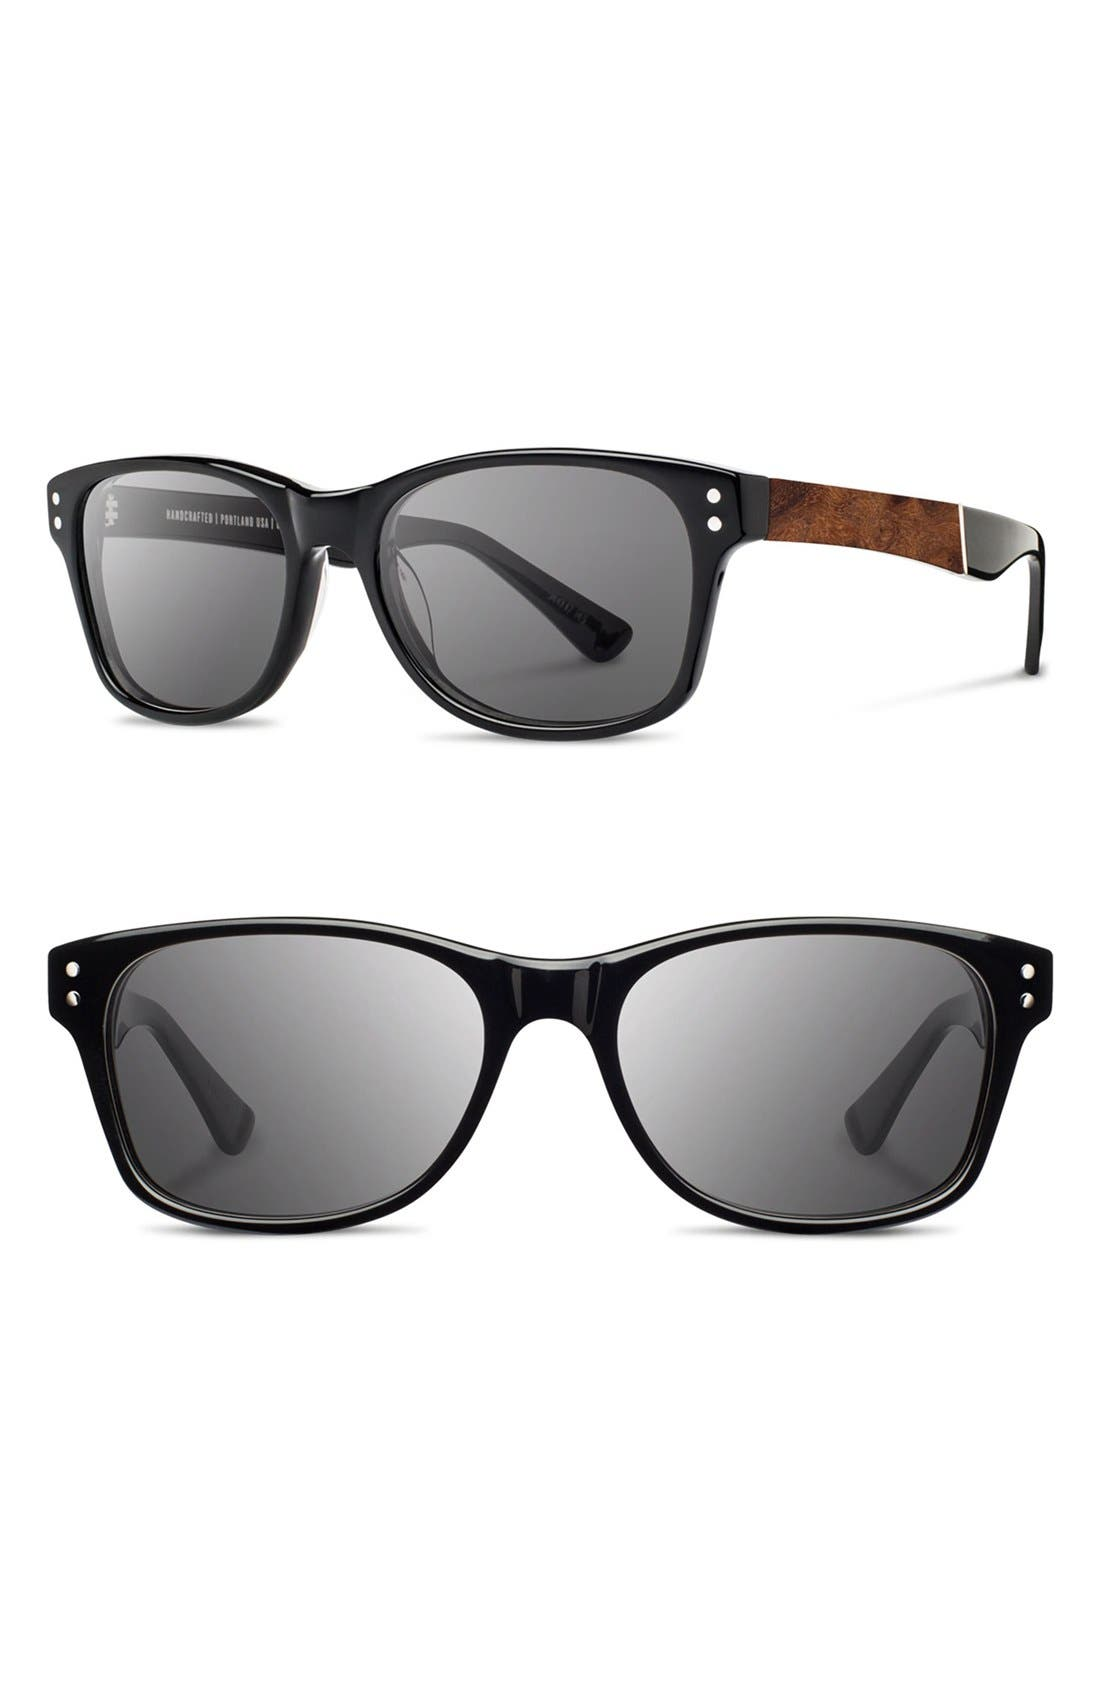 Alternate Image 1 Selected - Shwood 'Cannon' 54mm Polarized Acetate & Wood Sunglasses